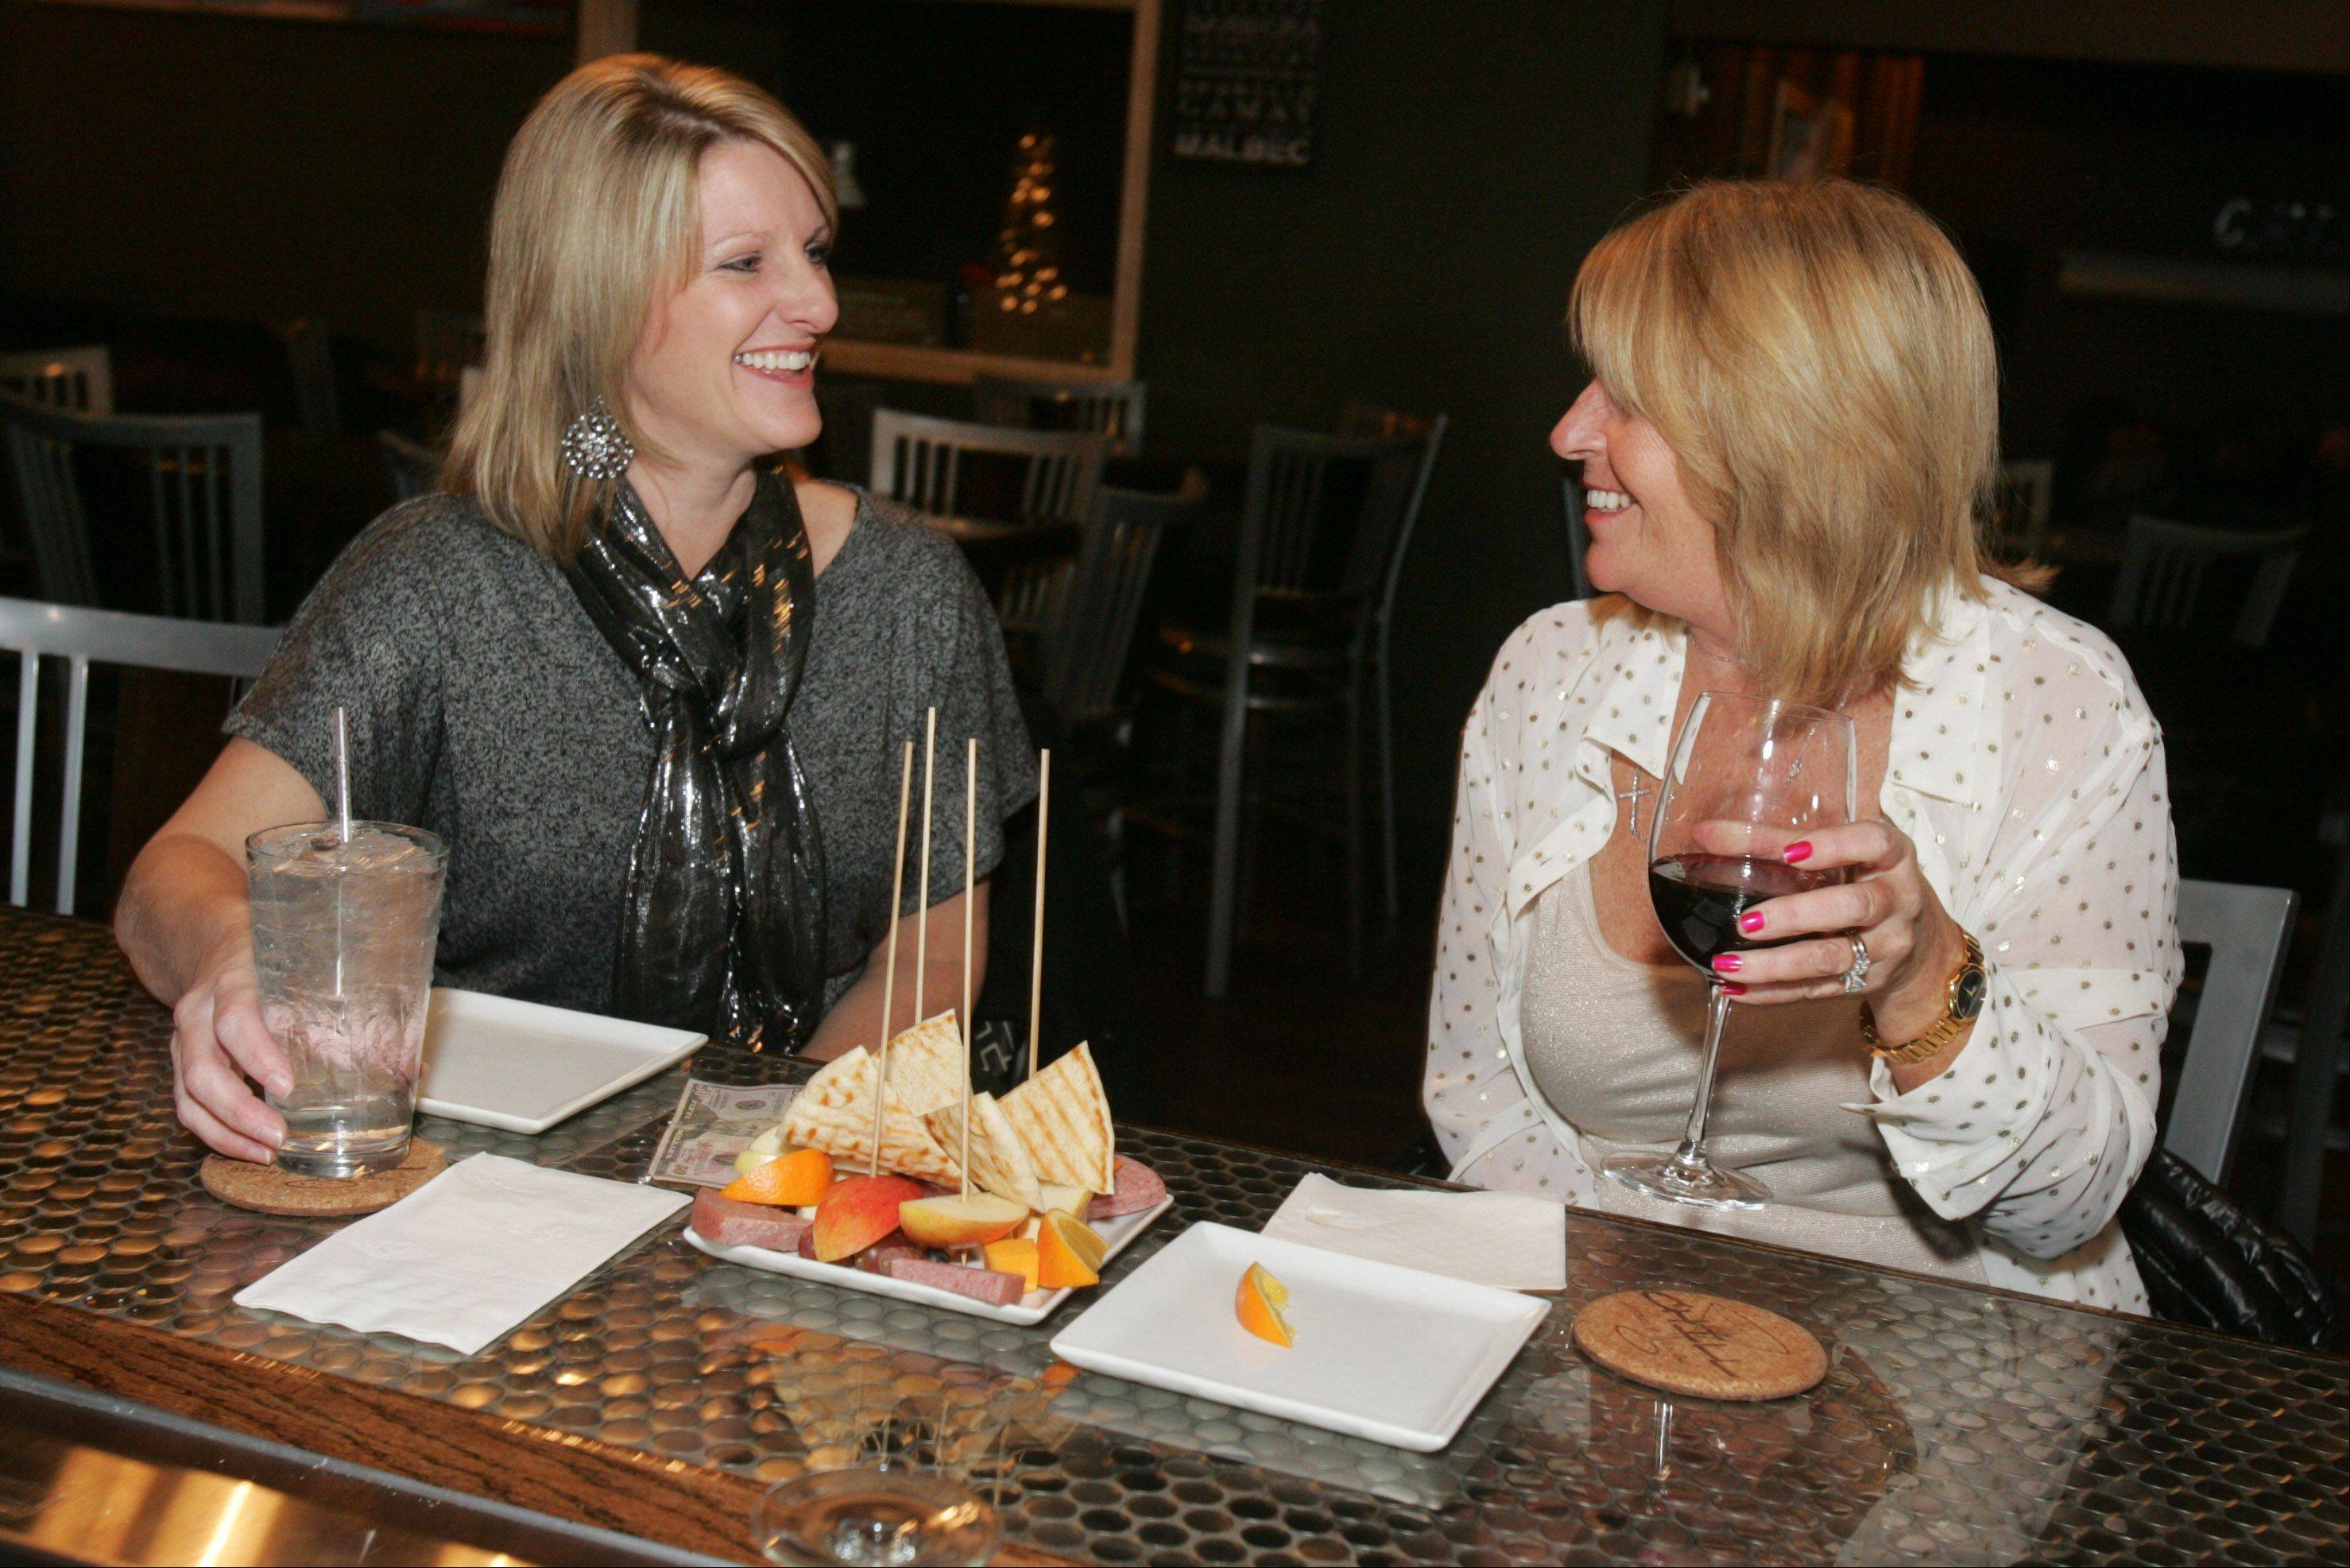 Pam Adams of Antioch, left, and Mary Martz of Trevor, Wisconsin, talk over drinks at Chill Martini & Wine Bar in Lake Villa.